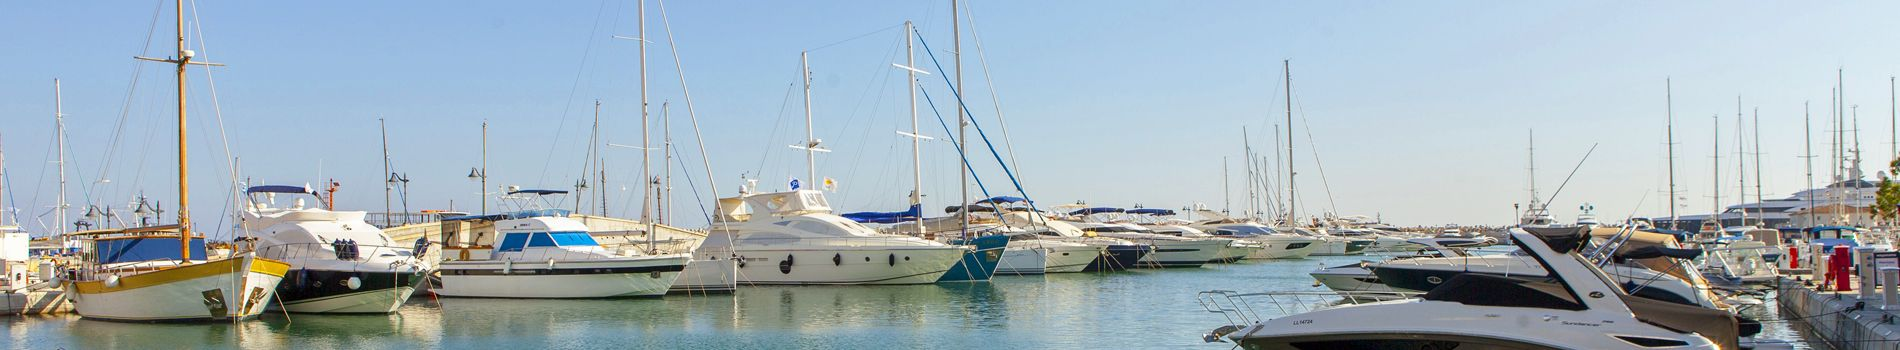 Marinas & Fishing Harbours